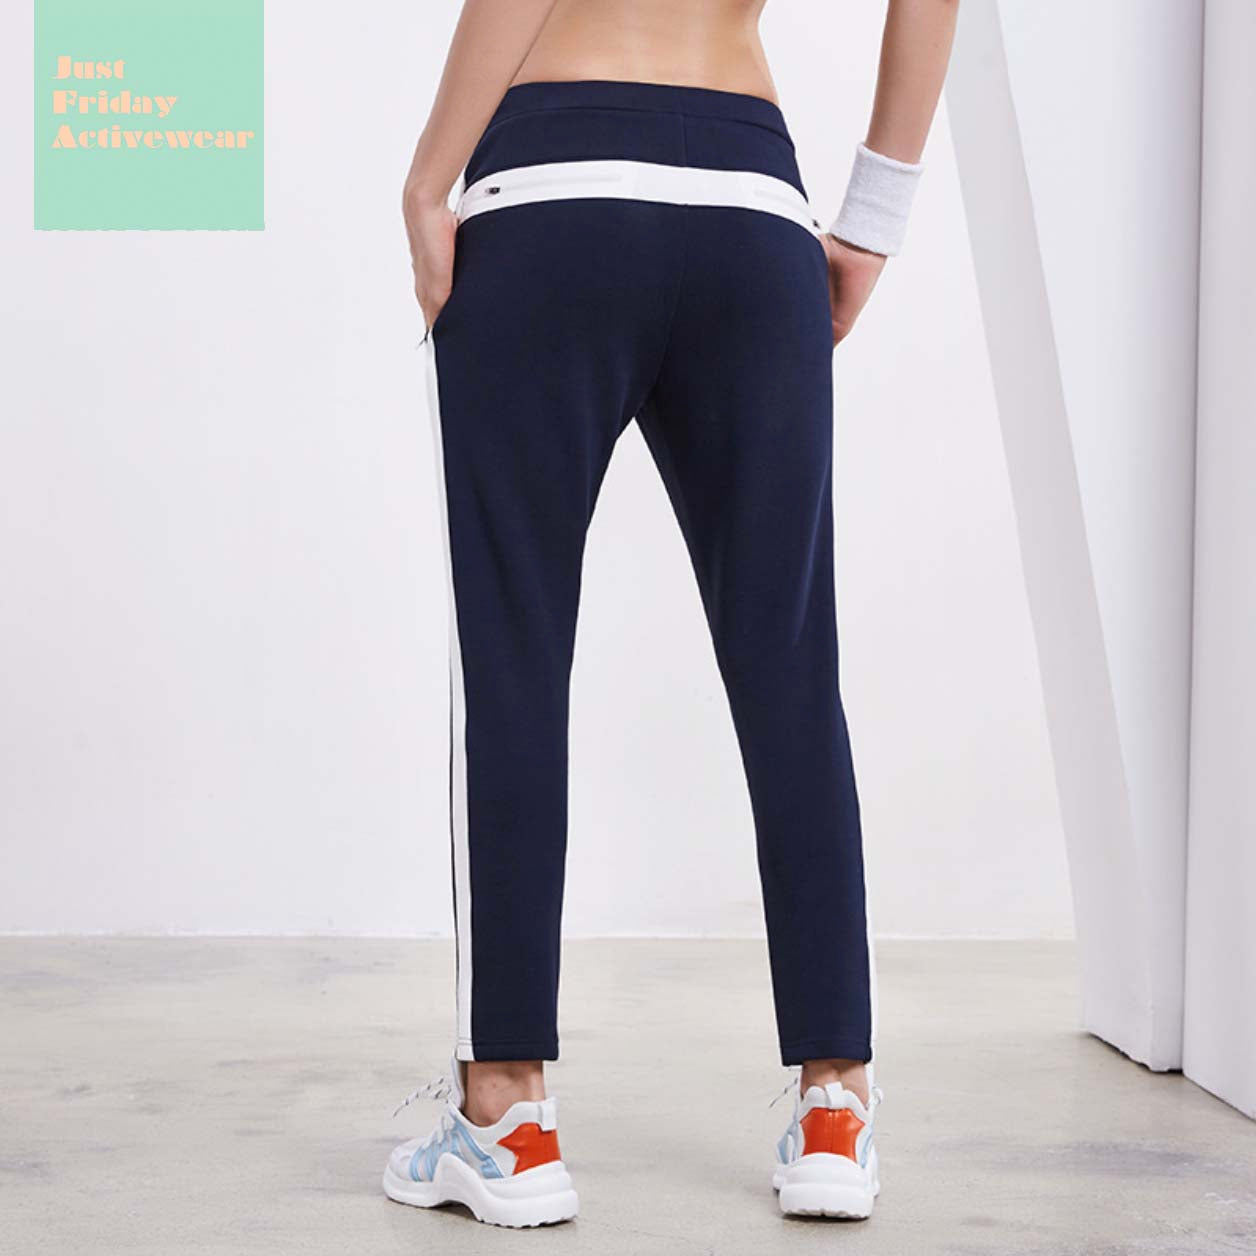 Sexy Two Tone Navy Zip Detailing Gym Wear Work Out Sports Wear Legging Yoga Pants